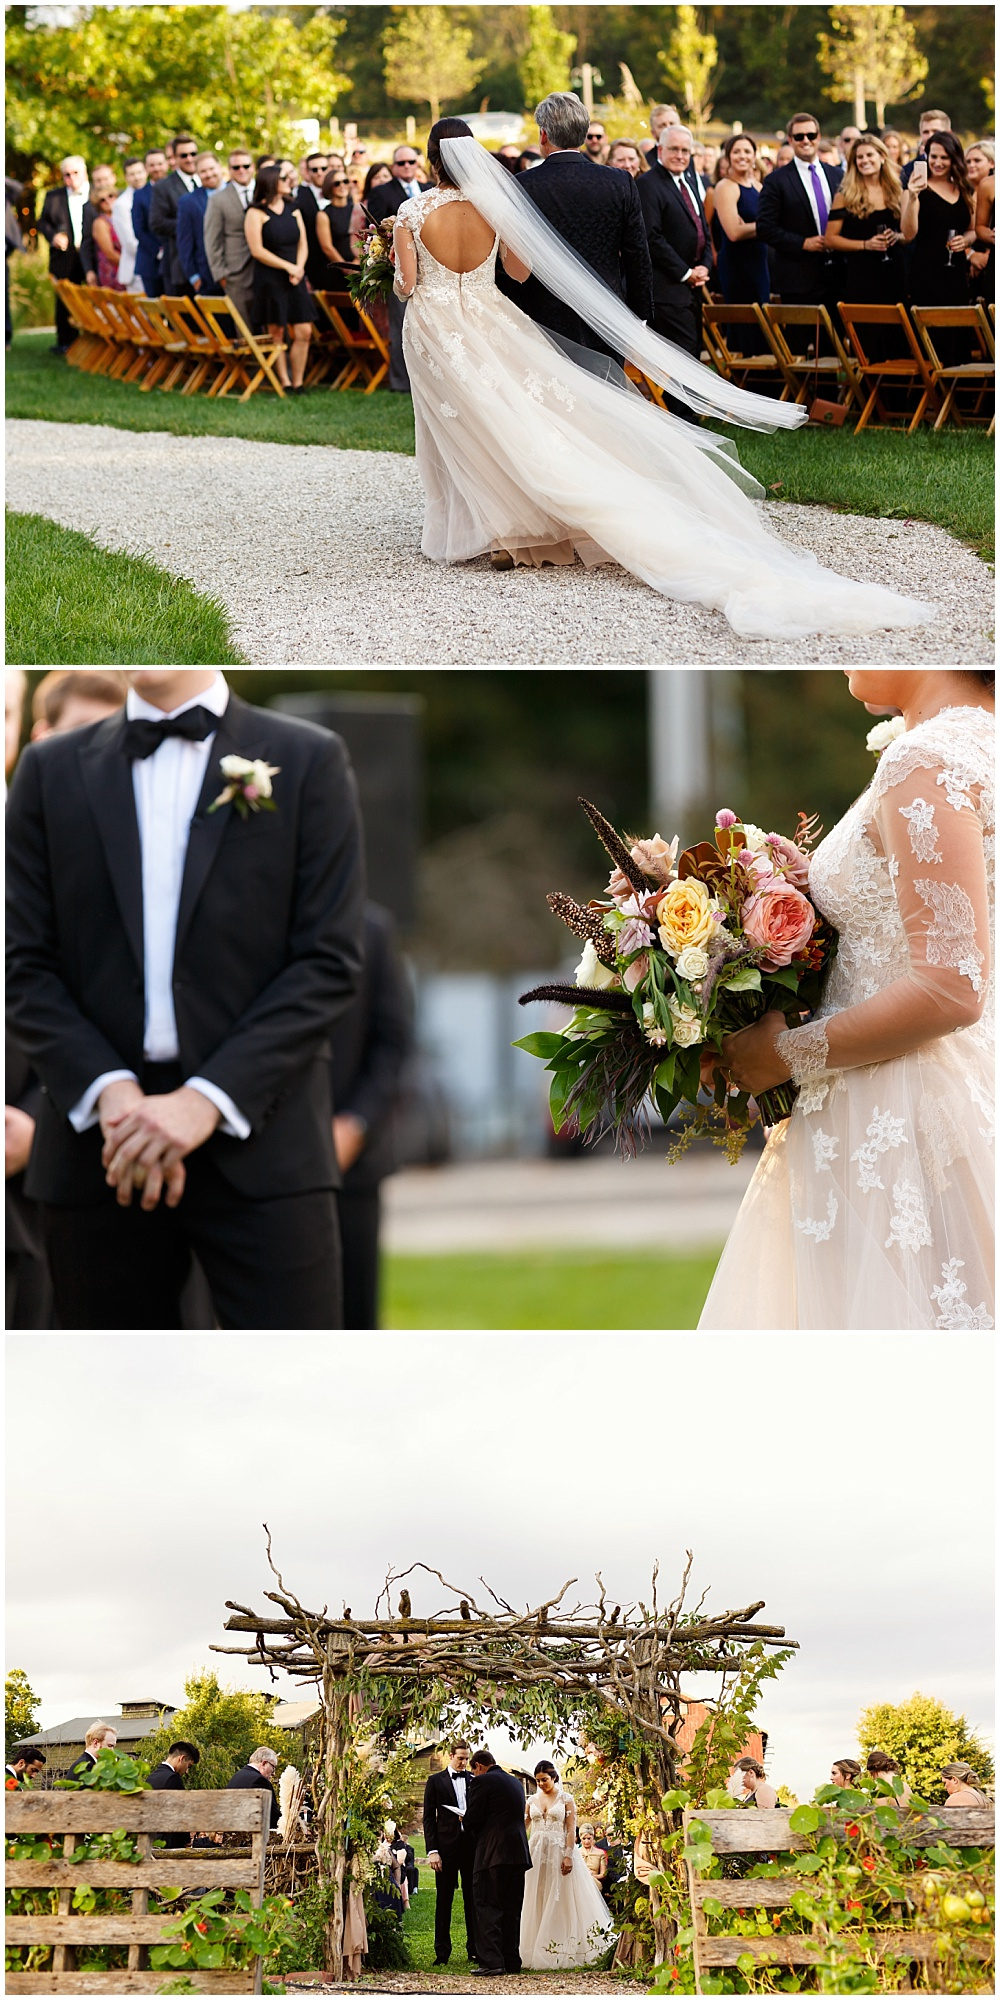 Outdoor ceremony with a gorgeous floral arch backdrop | Fall Indianapolis Traders Point Creamery garden wedding - fall, rustic details with an abundance of wedding blooms, velvet linens and fun details with Bobbi Photo and Jessica Dum Wedding Coordination